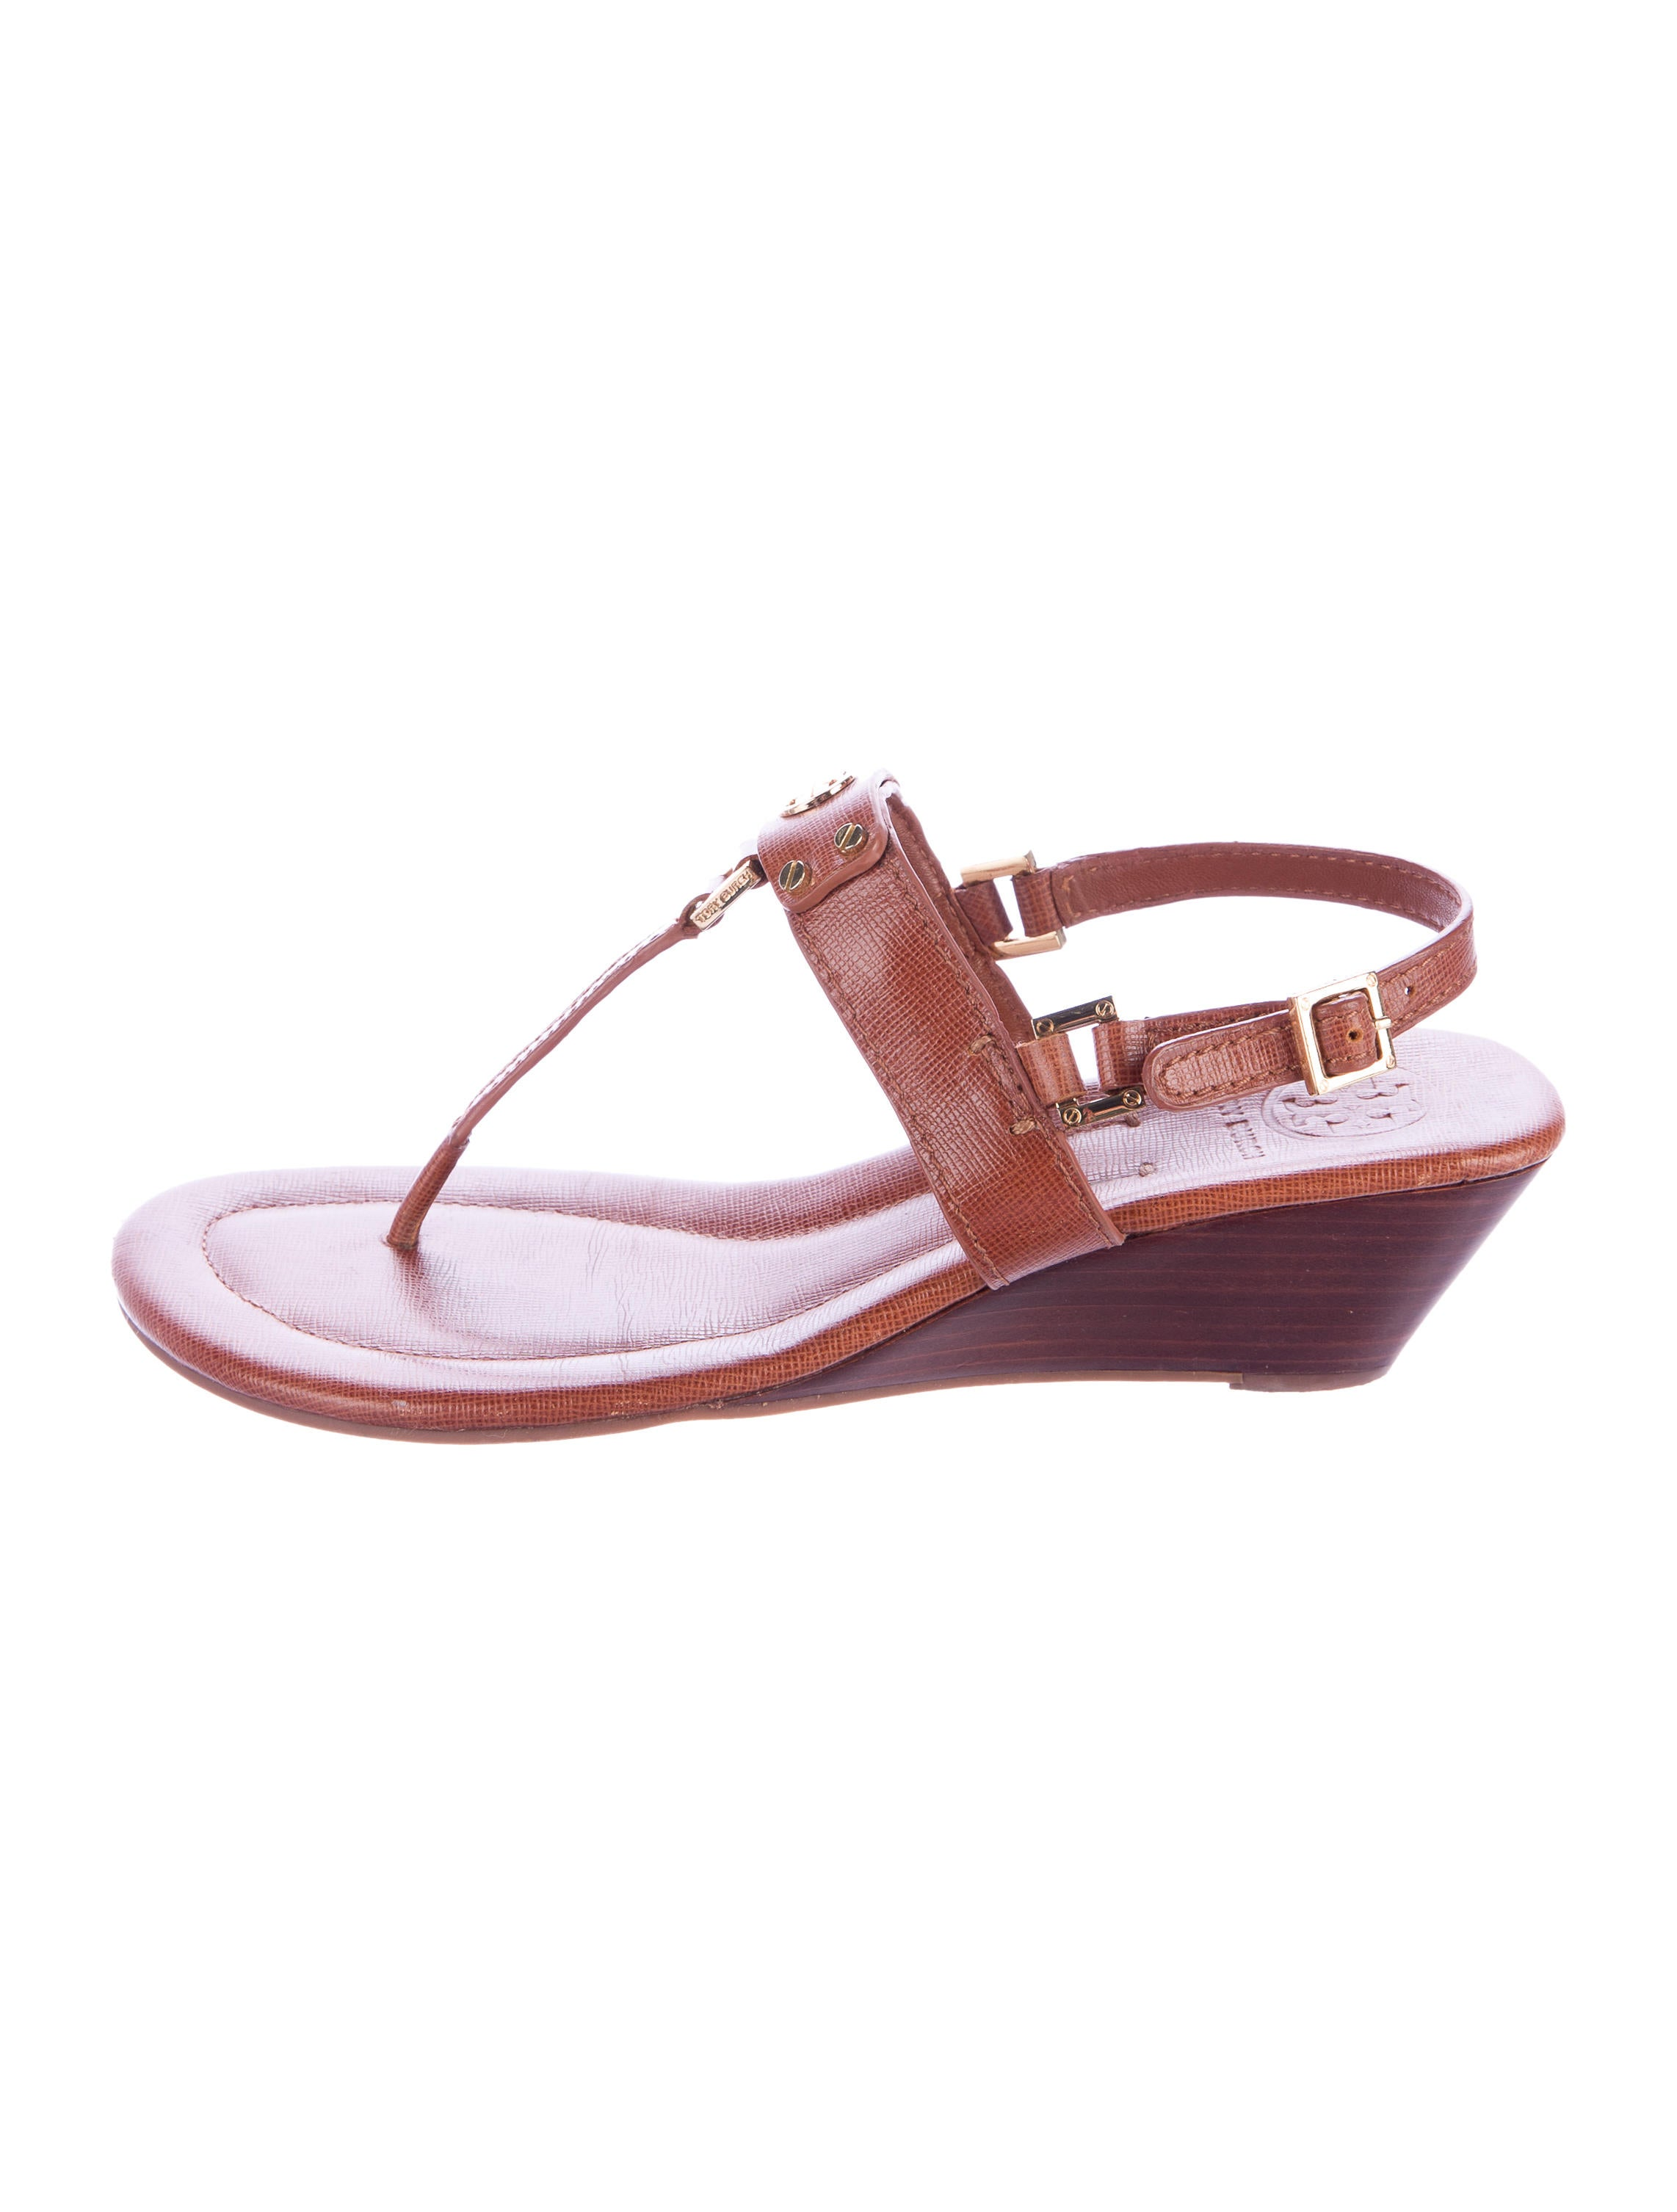 Tory Burch T Strap Wedge Sandals Shoes Wto101820 The